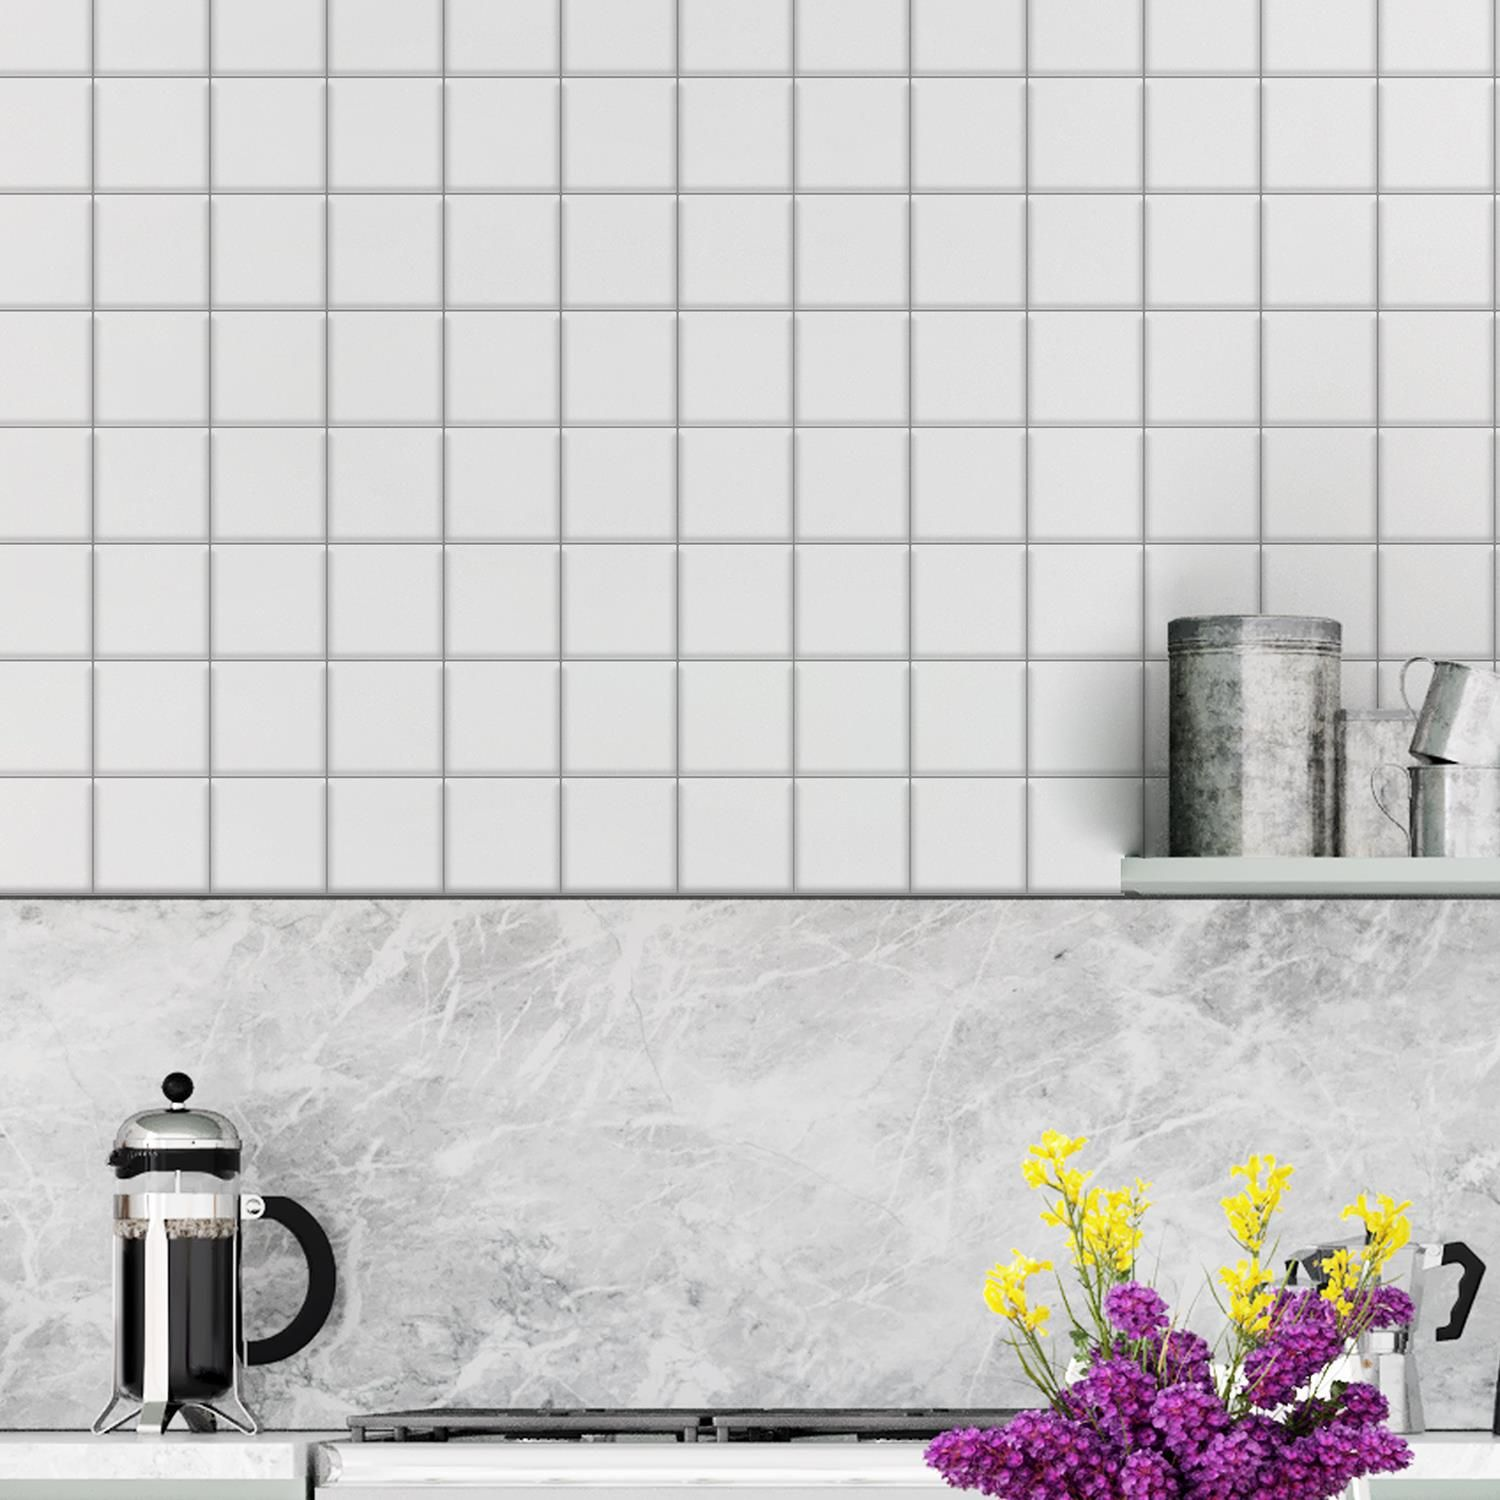 Spanish Retro White  Square Glossy 3D DIY Self Adhesive Tile Stickers 15 x 15cm (6 x 6 in) - 16pcs in a pack, 3D Tiles Wall Stickers, Kitchen, Bathroom, Living room, peel and stick